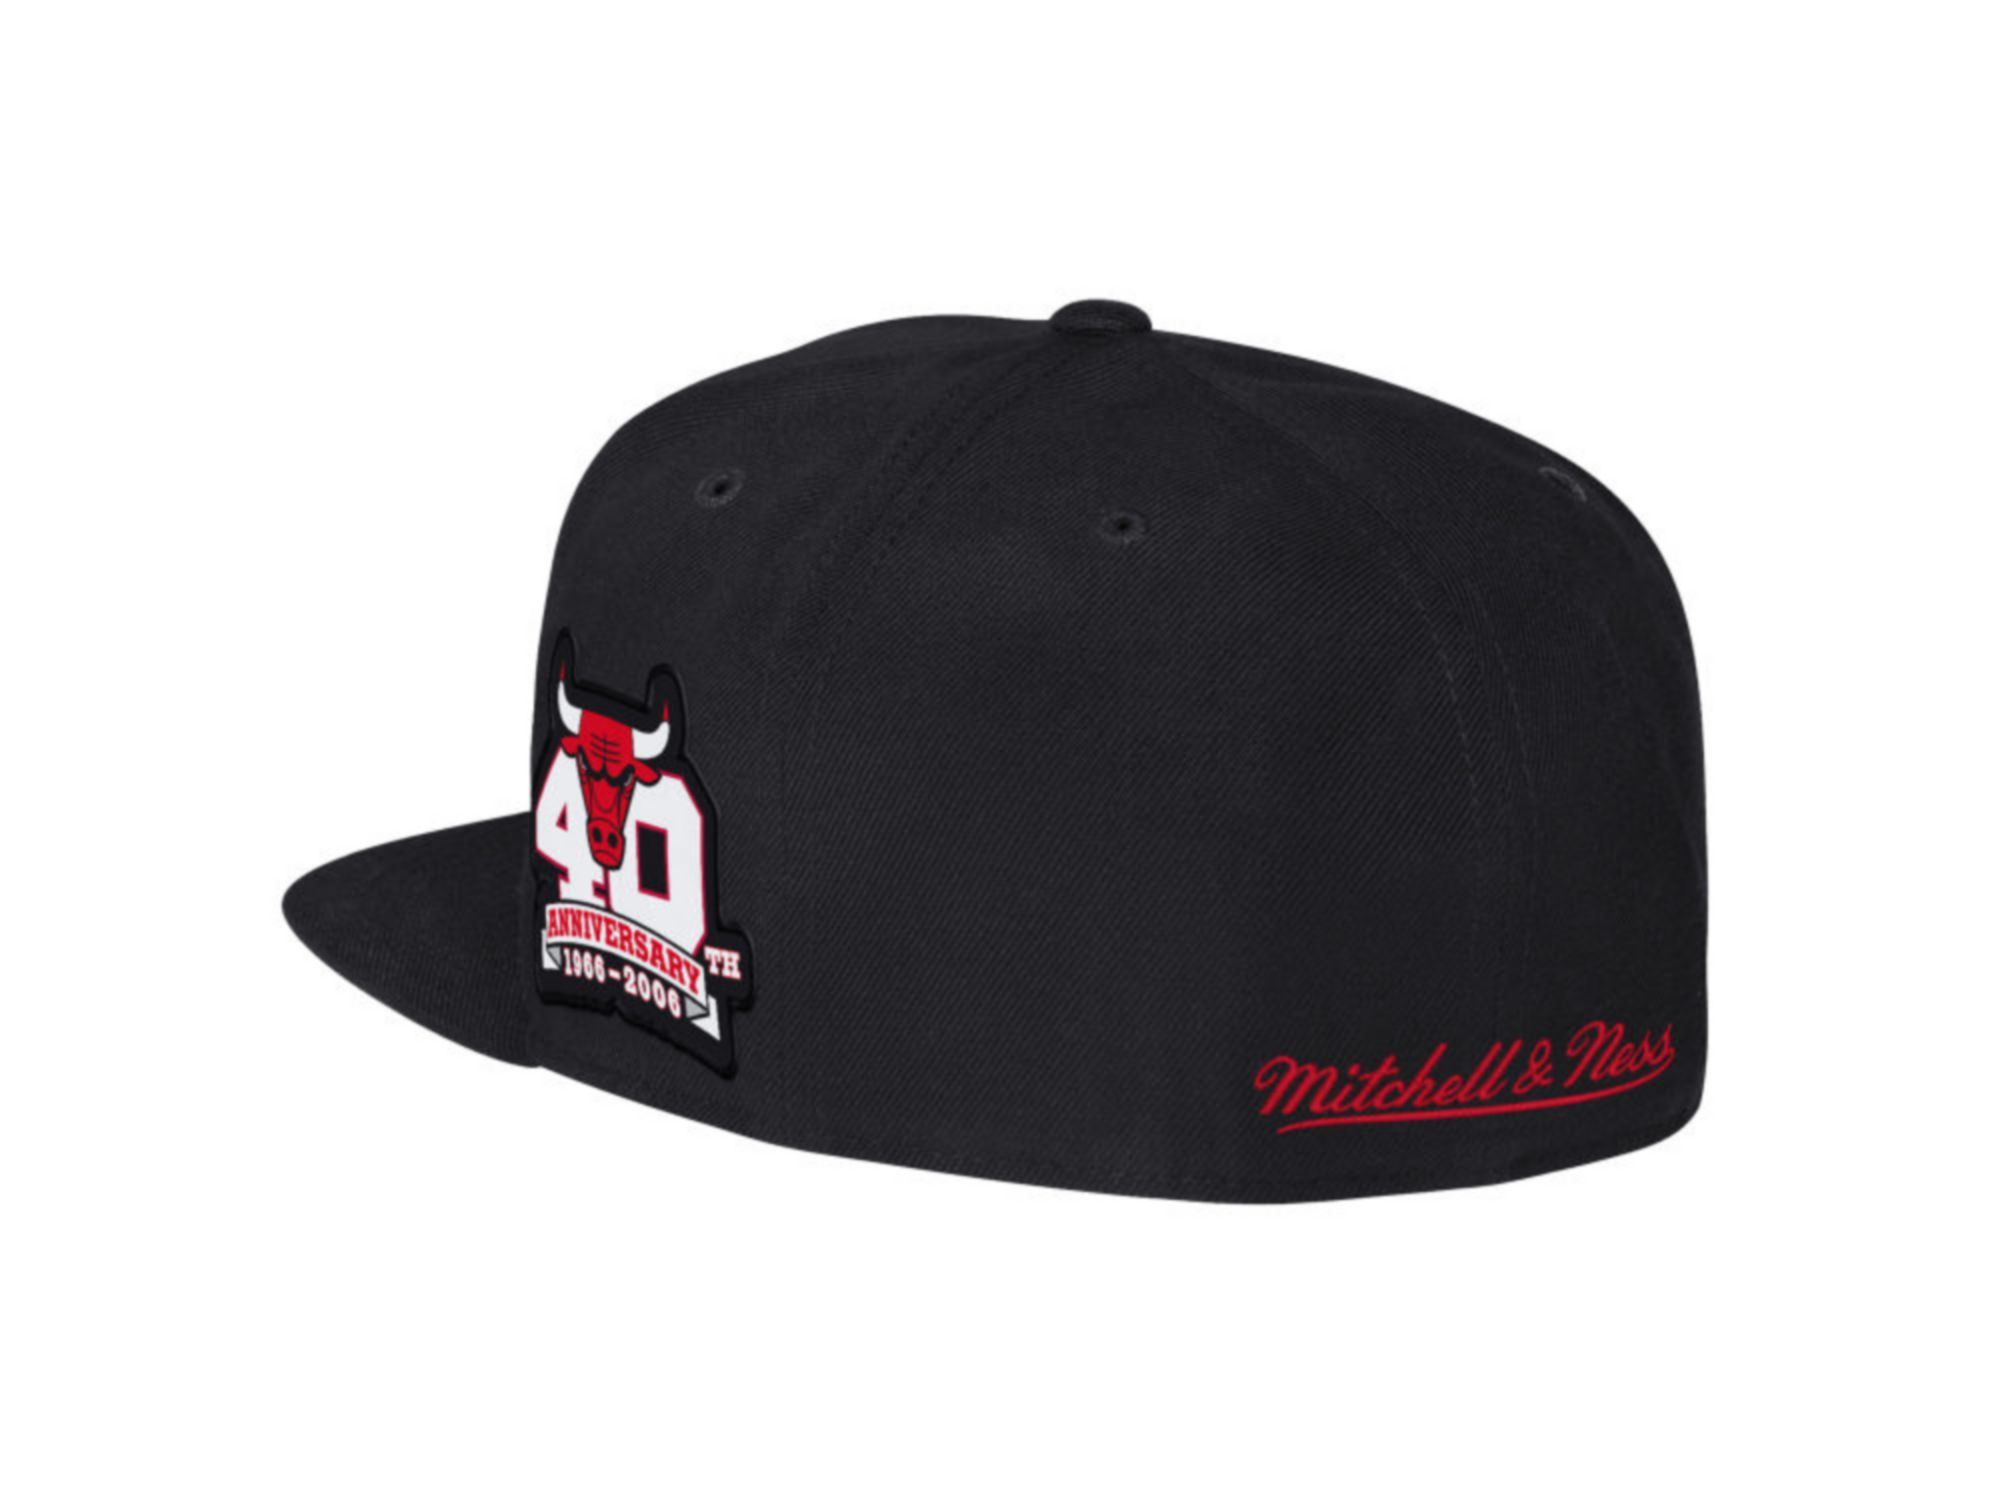 Mitchell & Ness Chicago Bulls Hardwood Classic Anniversary Patch 2-Tone Fitted Cap & Reviews - NBA - Sports Fan Shop - Macy's